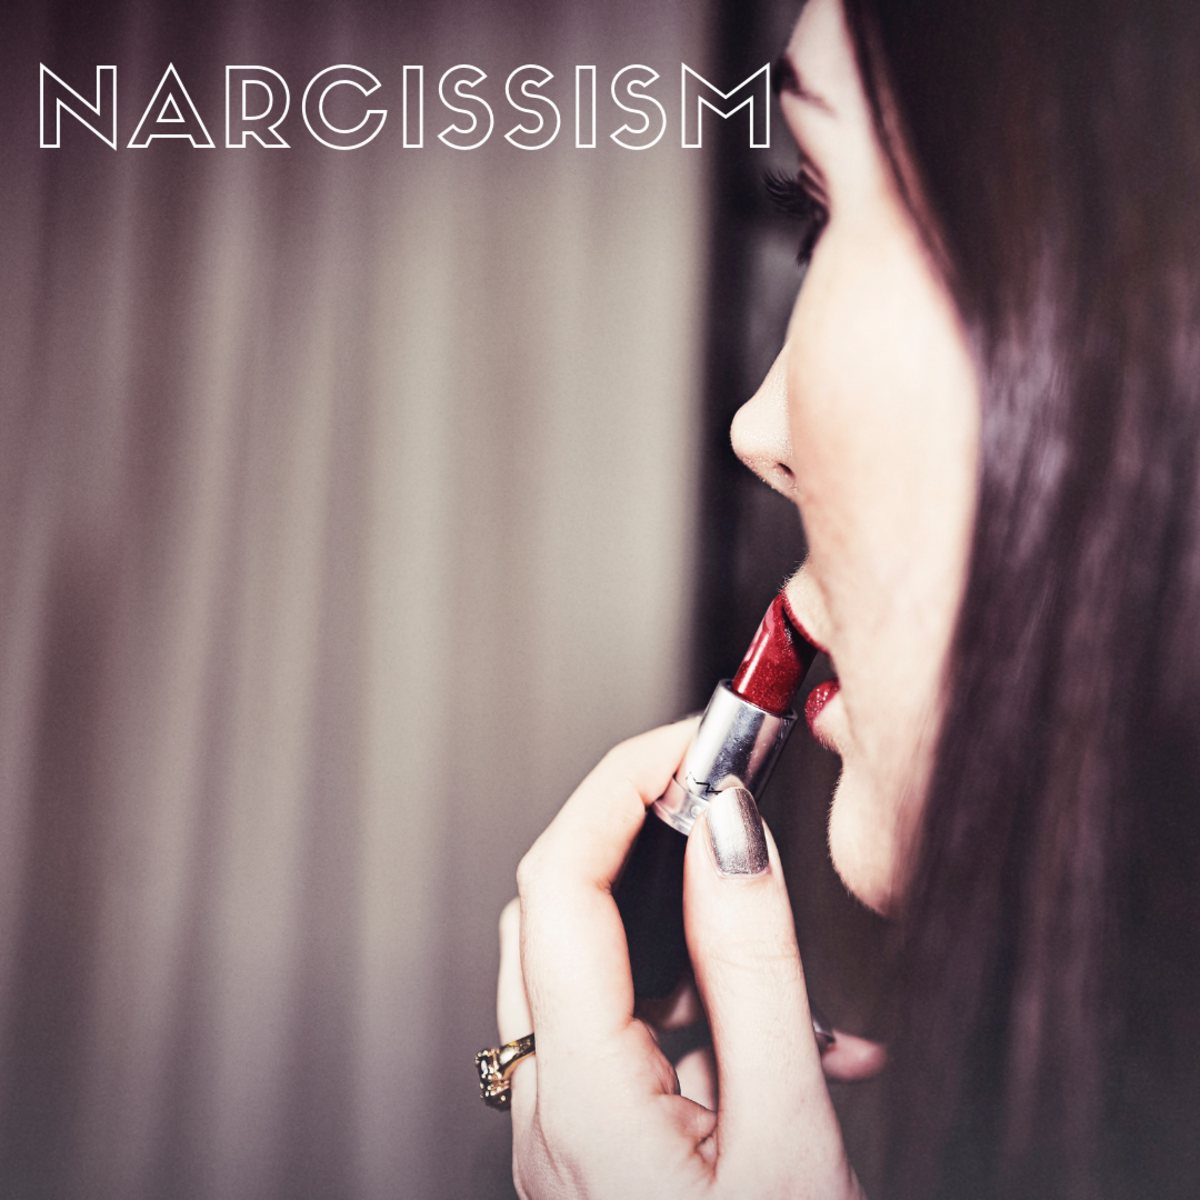 One thing all cheaters have in common: narcissistic tendencies.